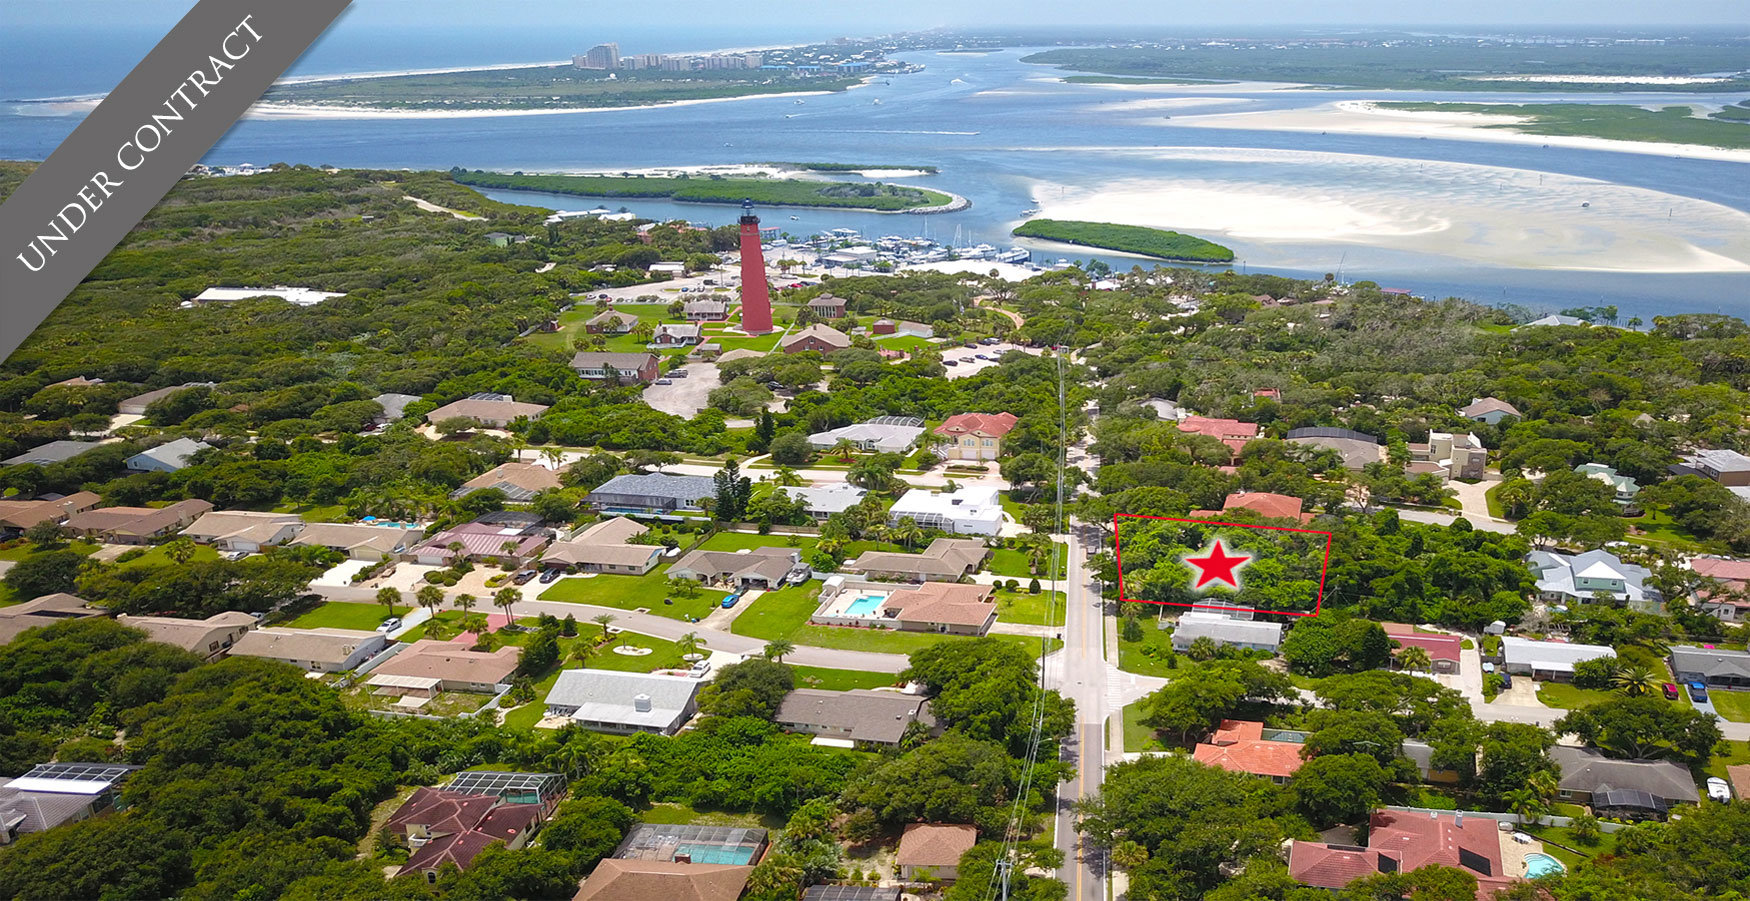 Ponce Inlet Real Estate For Sale. 4908 S Peninsula Drive. Beachside river view land for sale